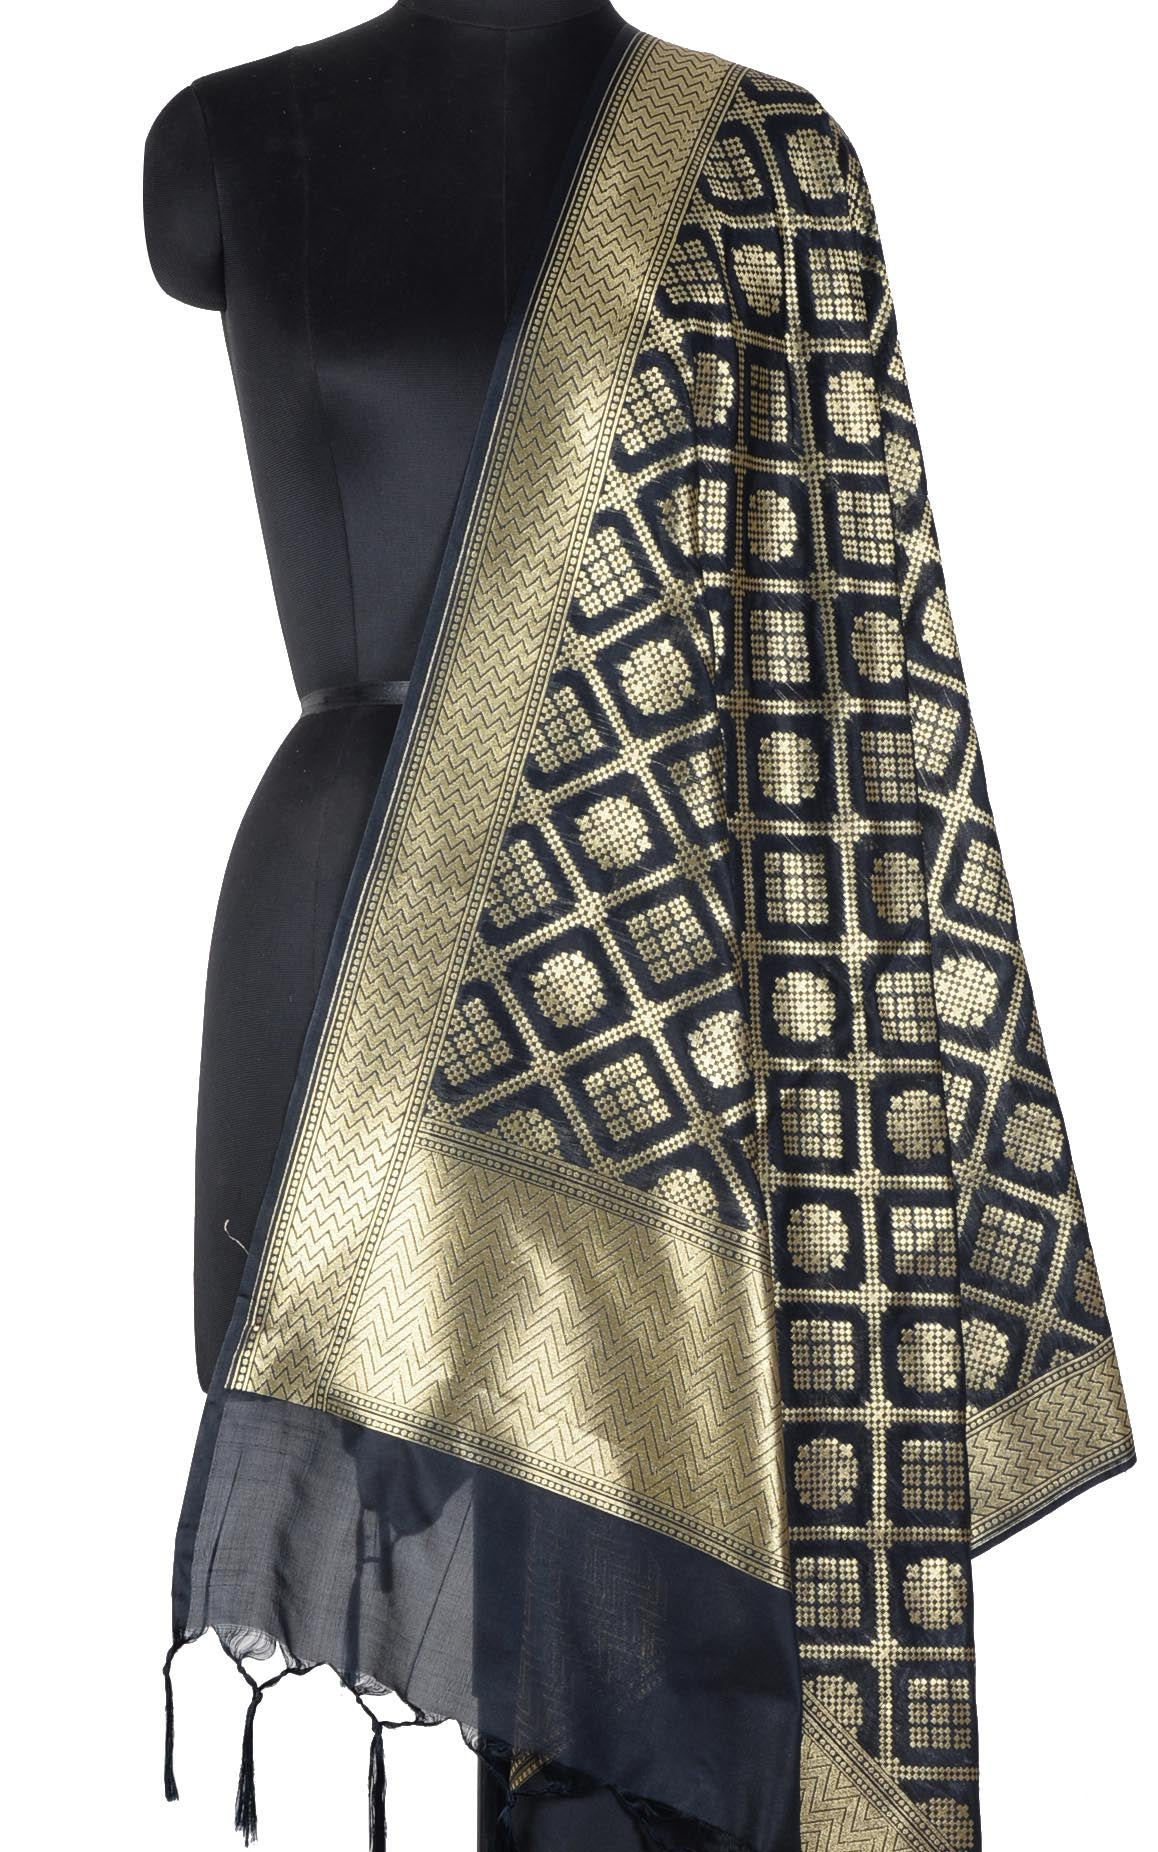 Black Banarasi dupatta with gharchola jaal (1) Main